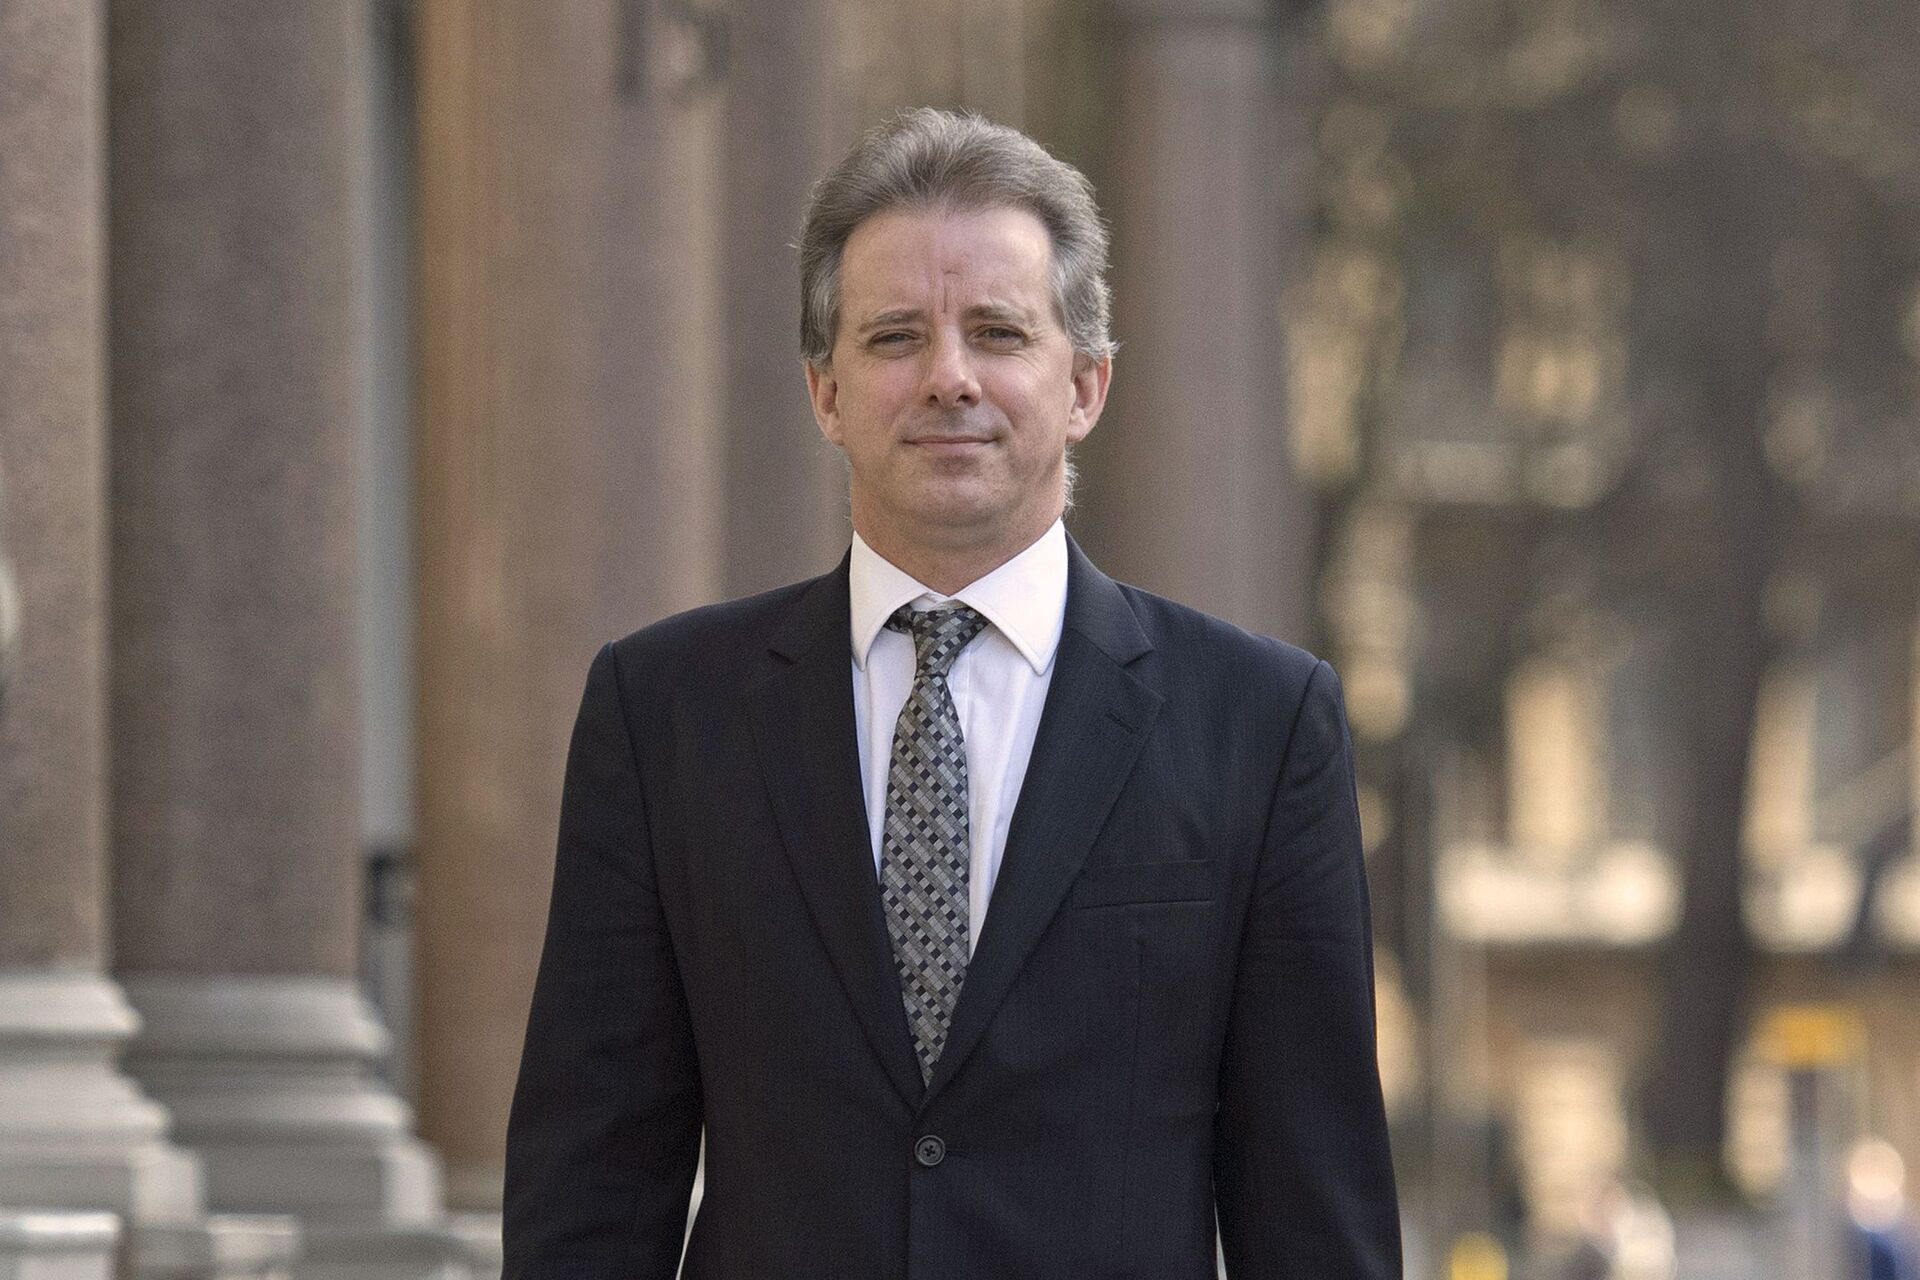 FILE - This Tuesday, March 7, 2017 file photo shows Christopher Steele, the former MI6 agent who set up Orbis Business Intelligence and compiled a dossier on Donald Trump, in London - Sputnik International, 1920, 07.09.2021